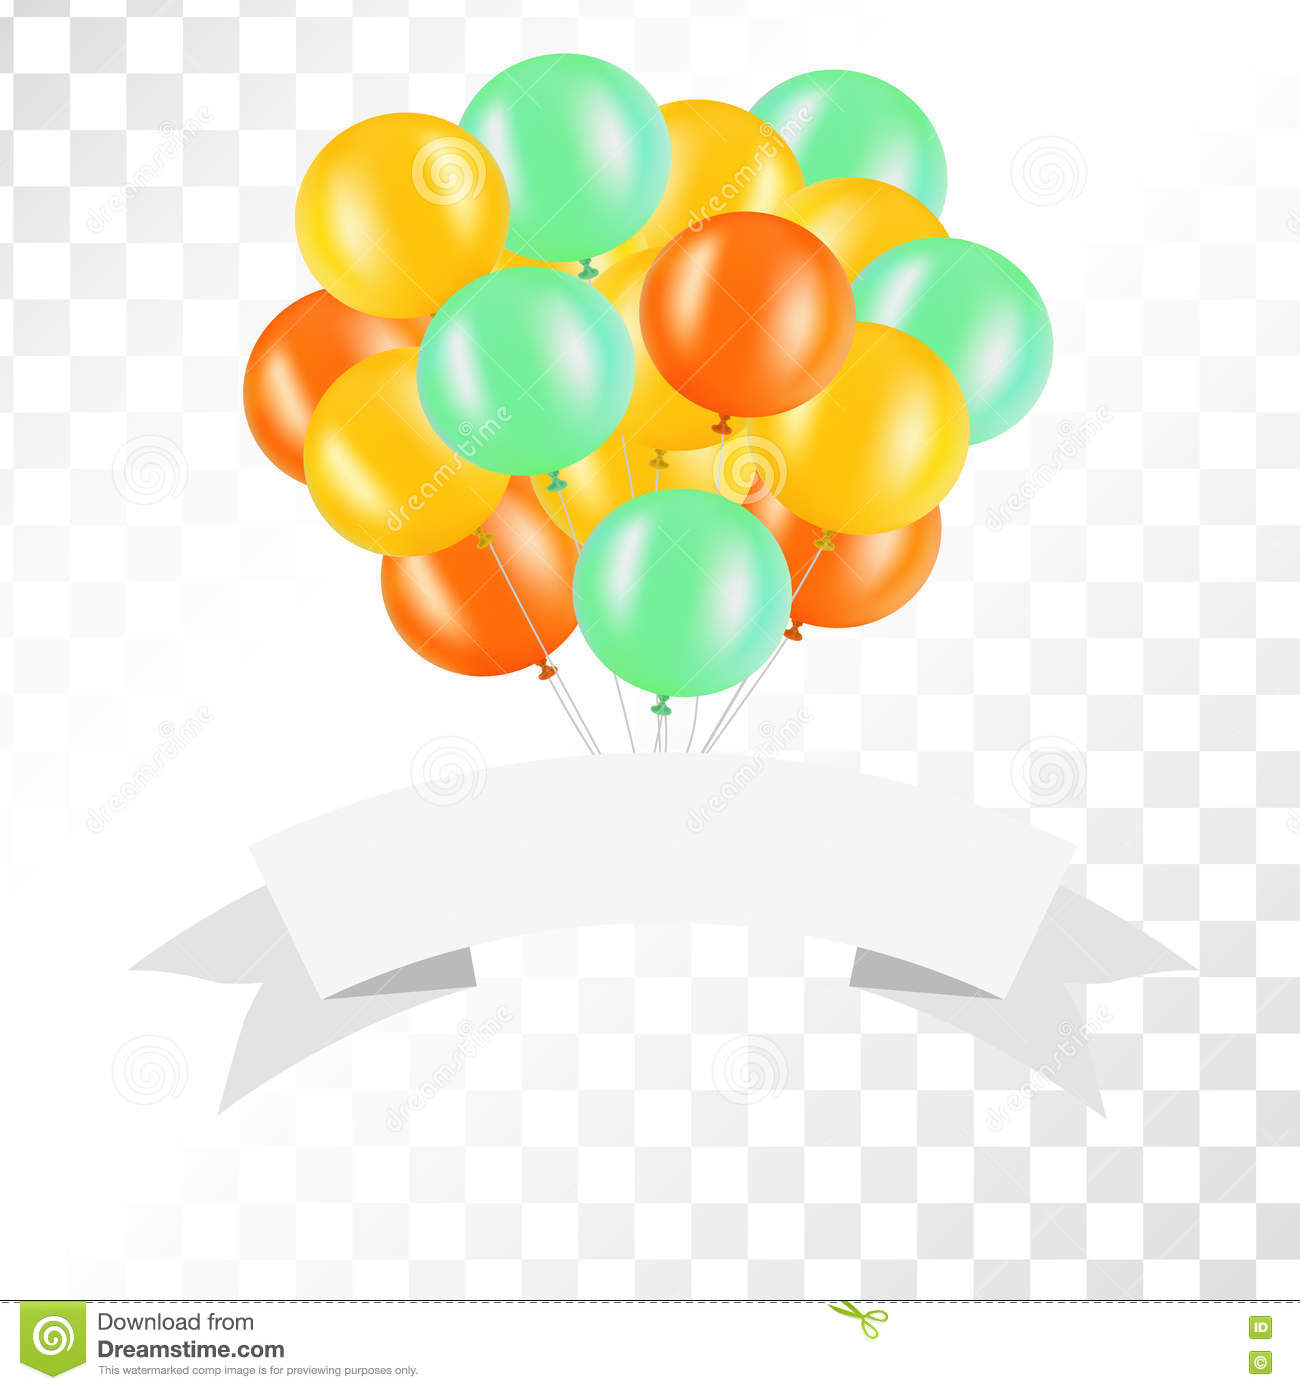 Ribbon transparent background clipart image free stock White Ribbon With Balloons On Transparent Background. Vector ... image free stock